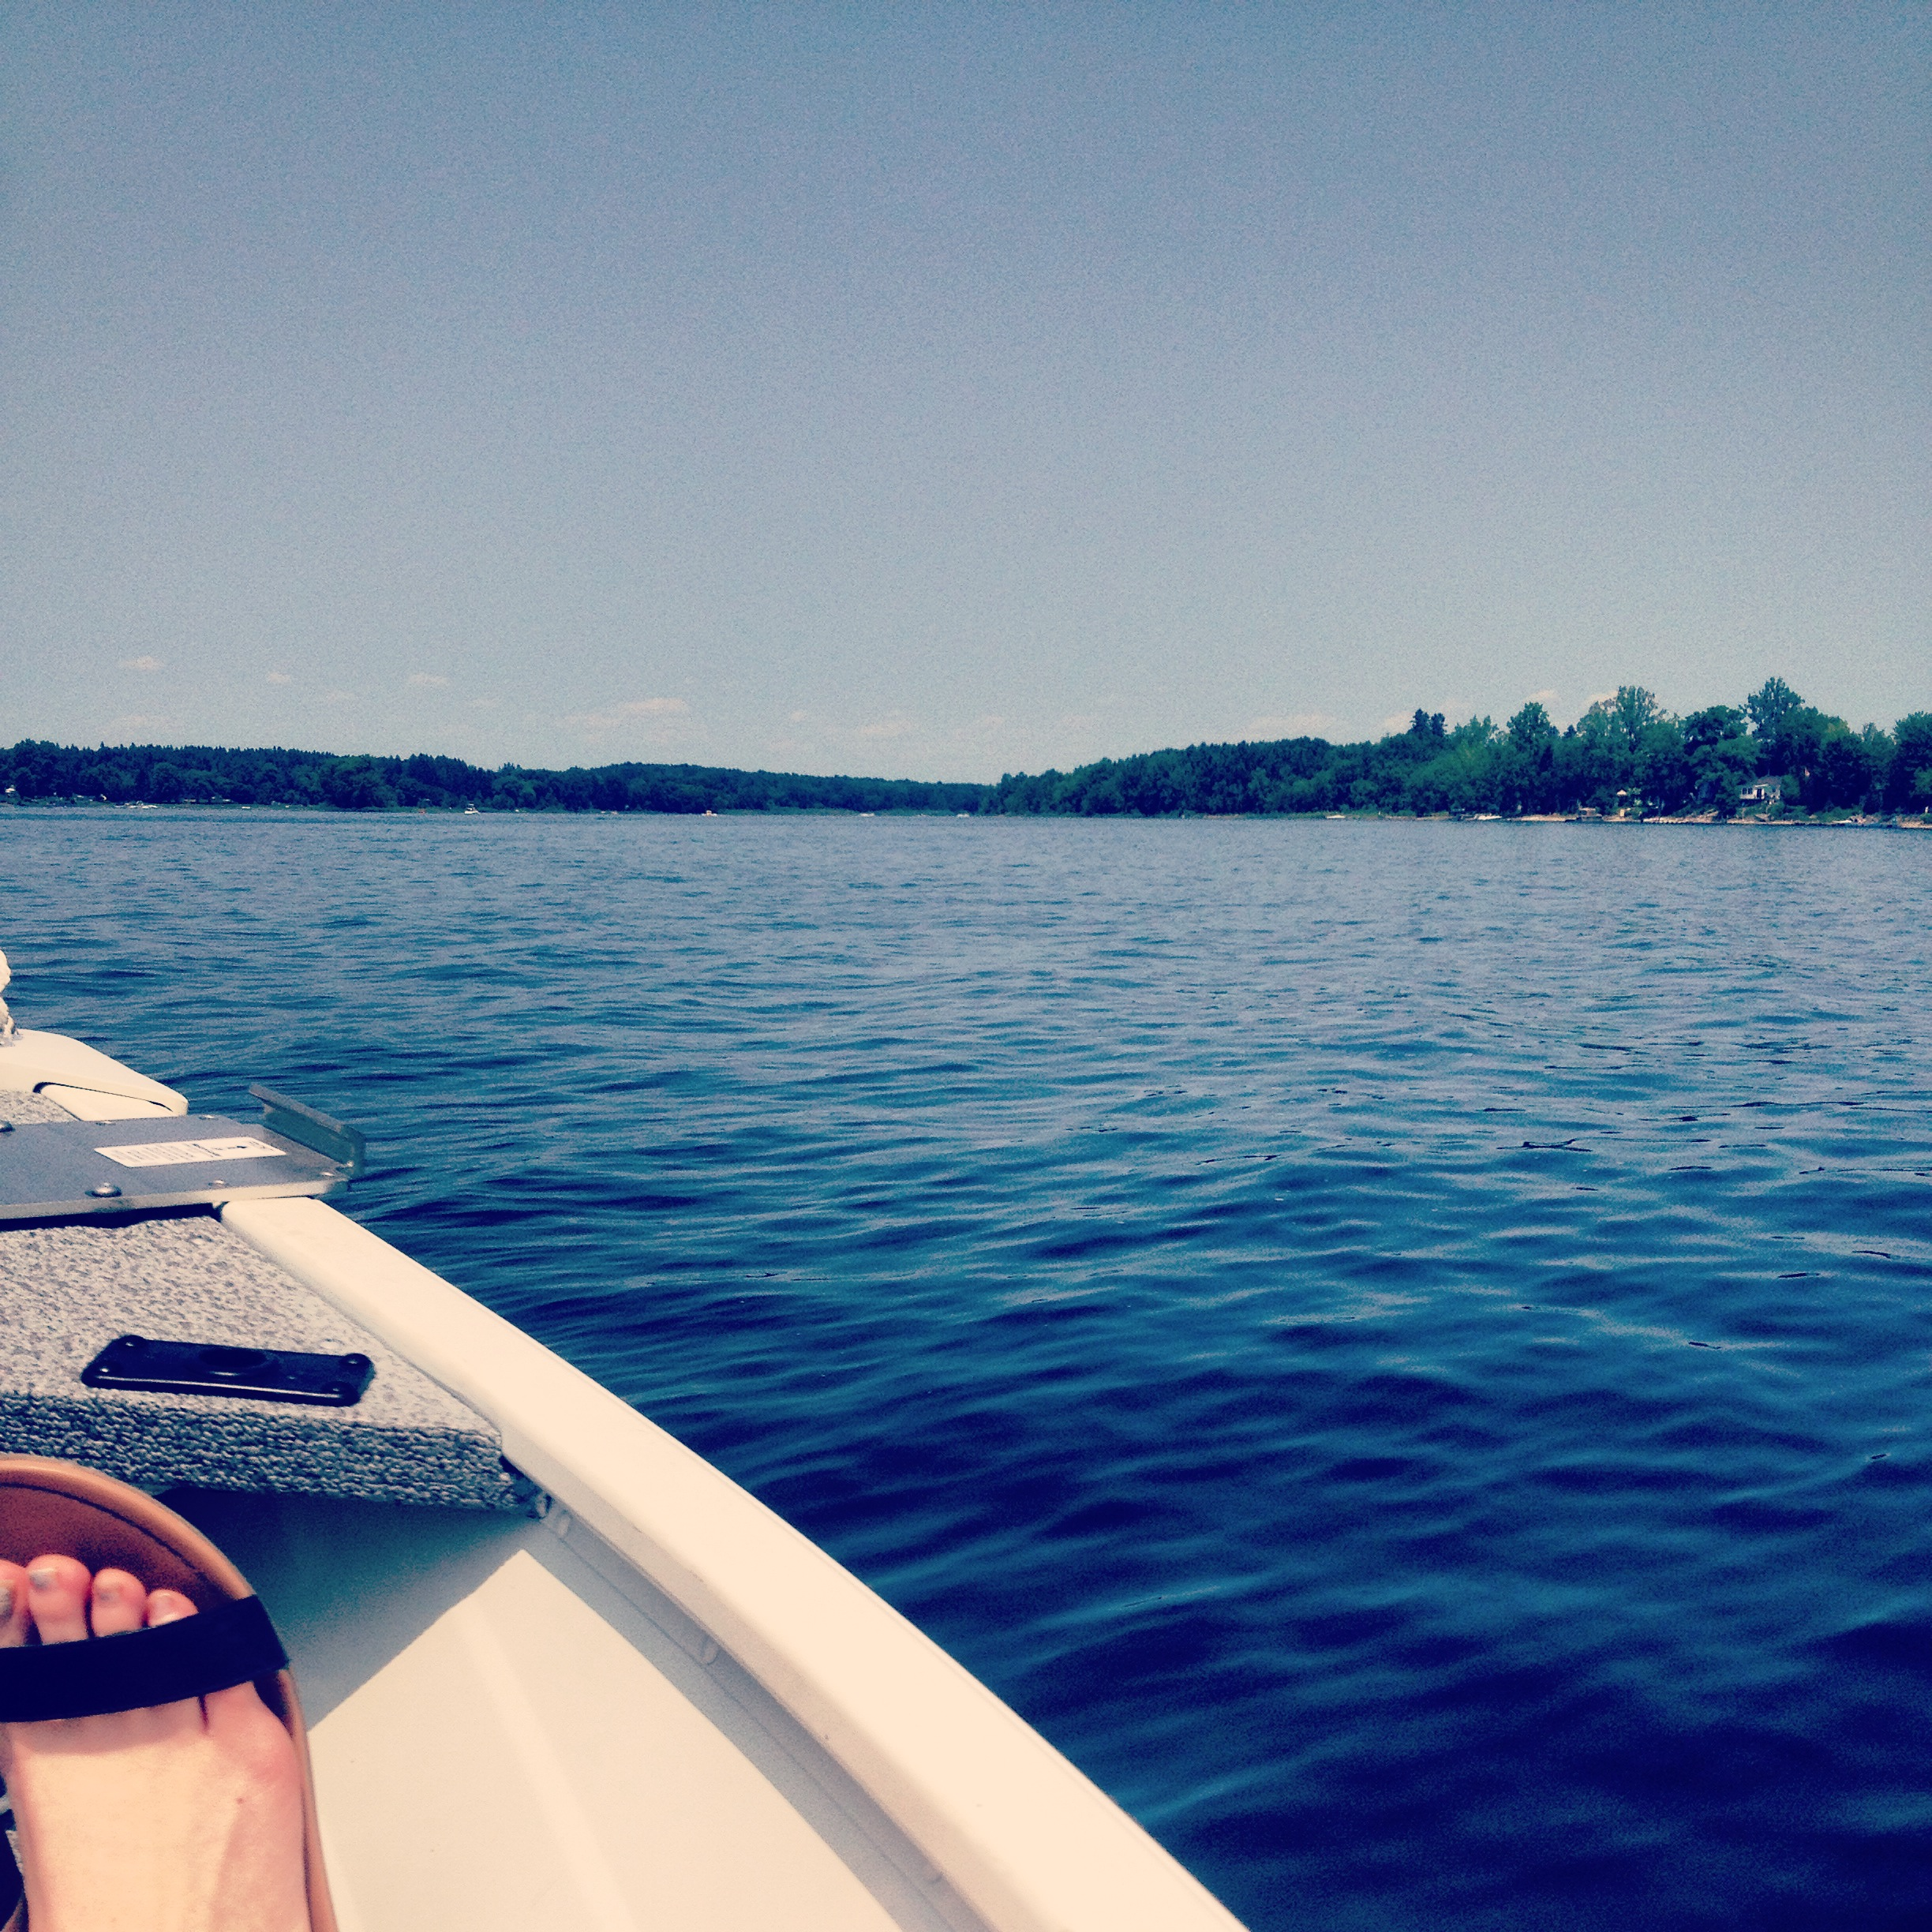 Boating View